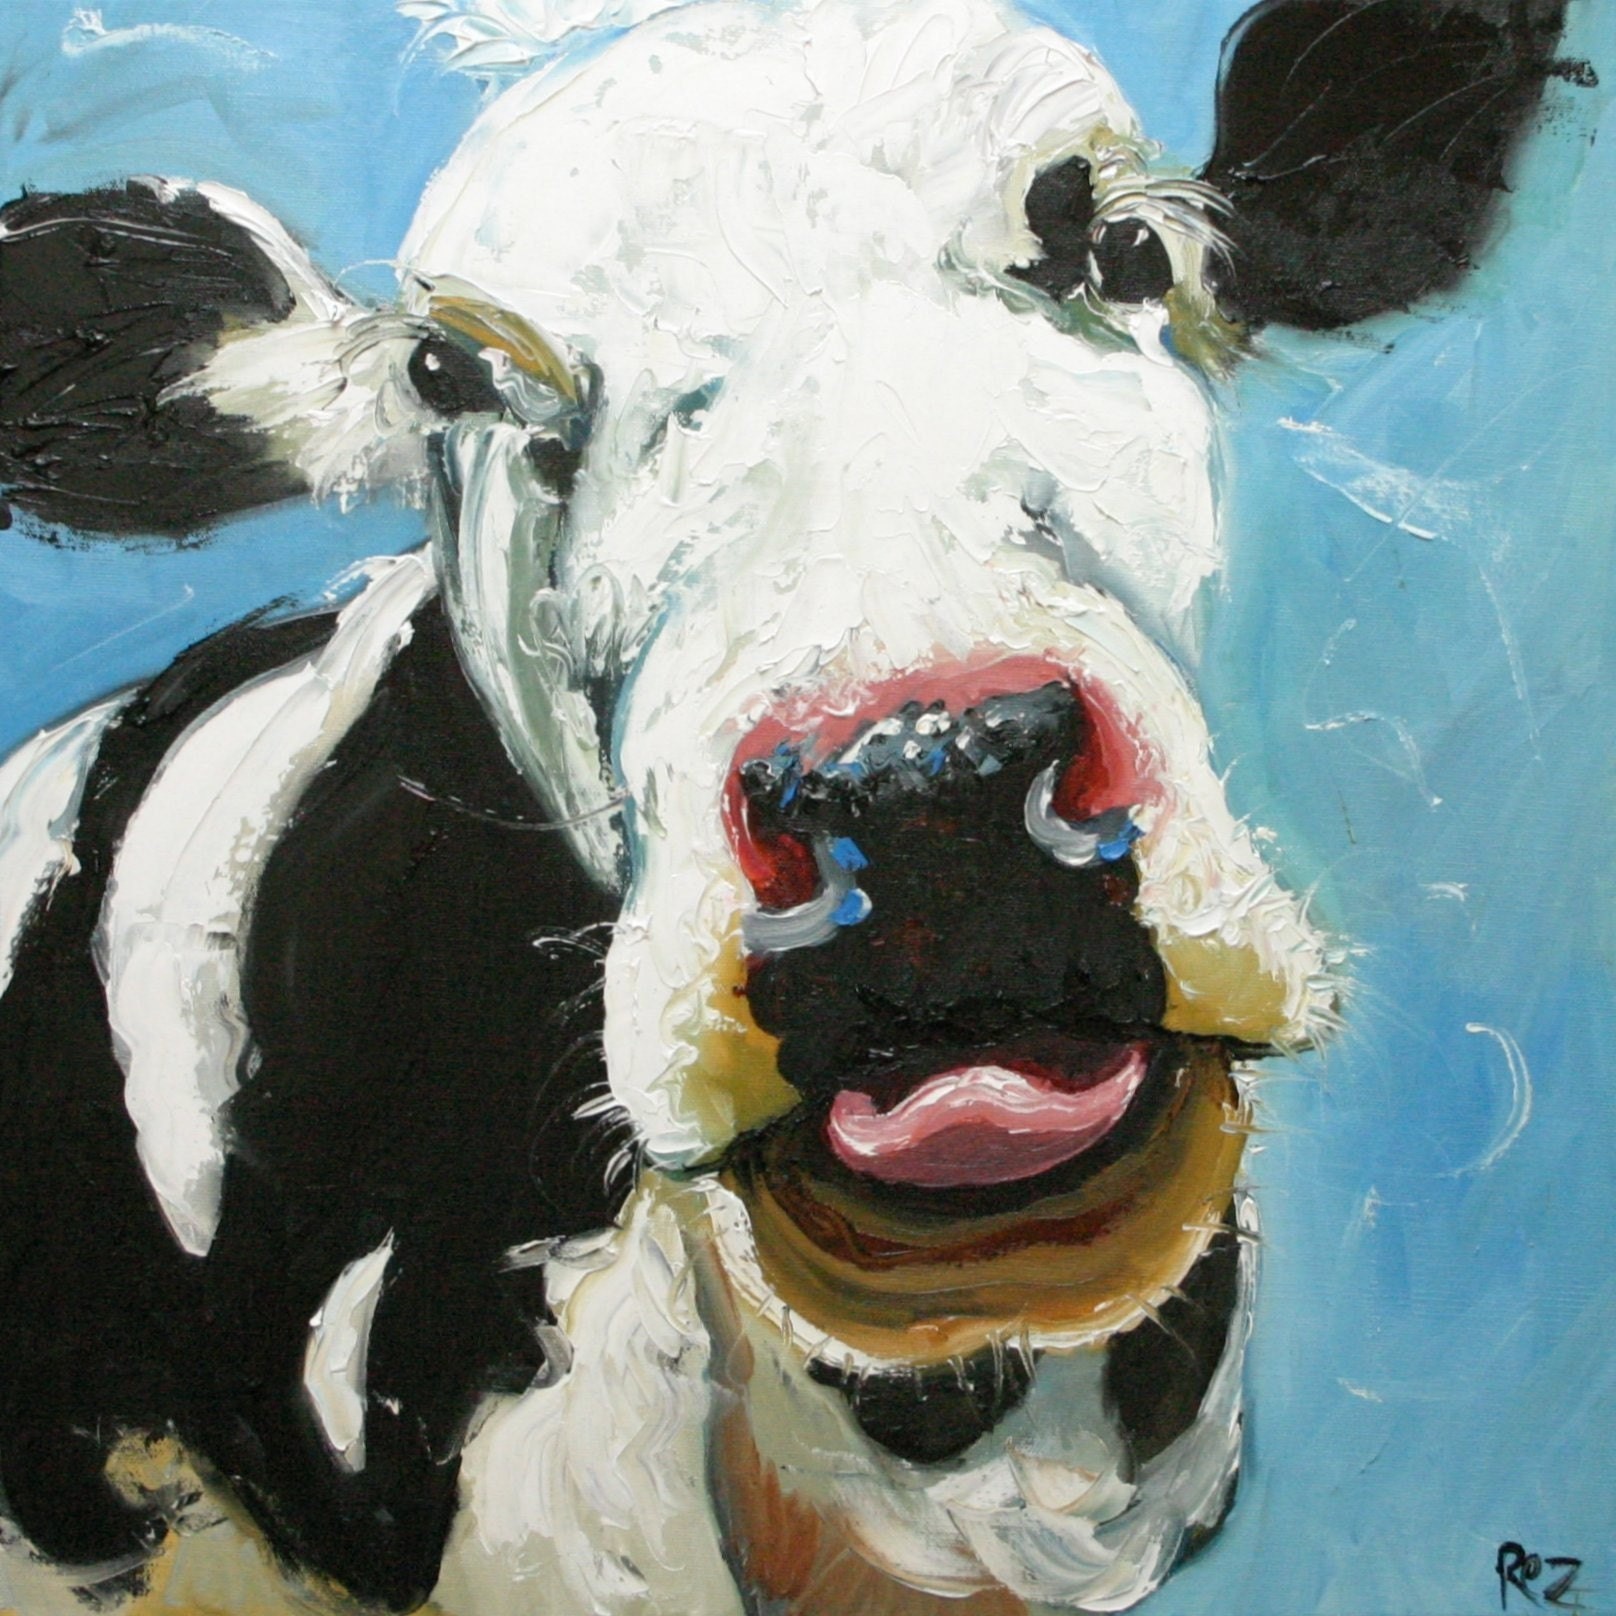 Cow 206 20x20 inch original oil painting by Roz